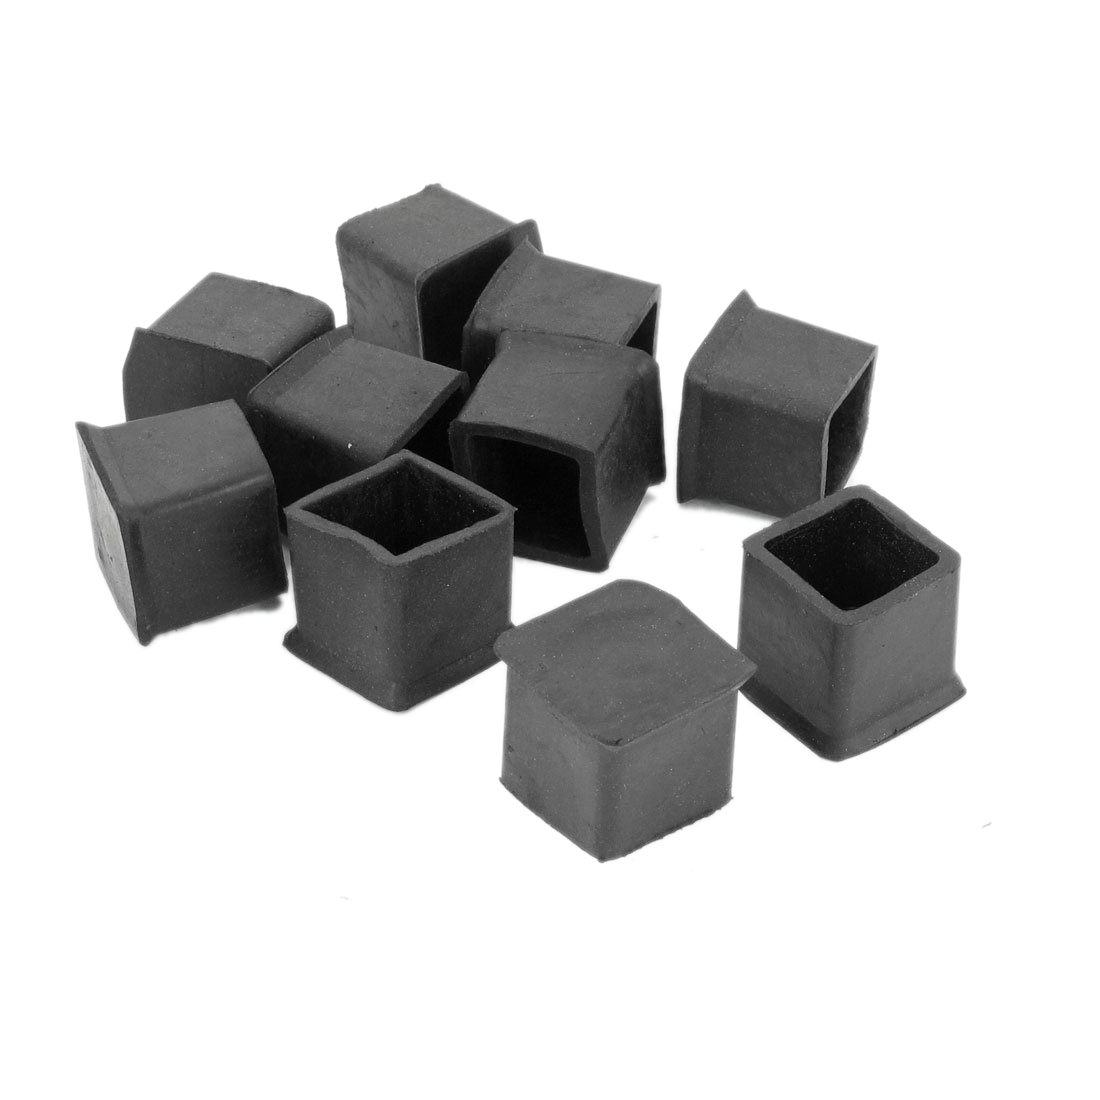 PHFU 10 Pcs Rubber 25mm x 25mm Furniture Chair Legs Covers Protectors